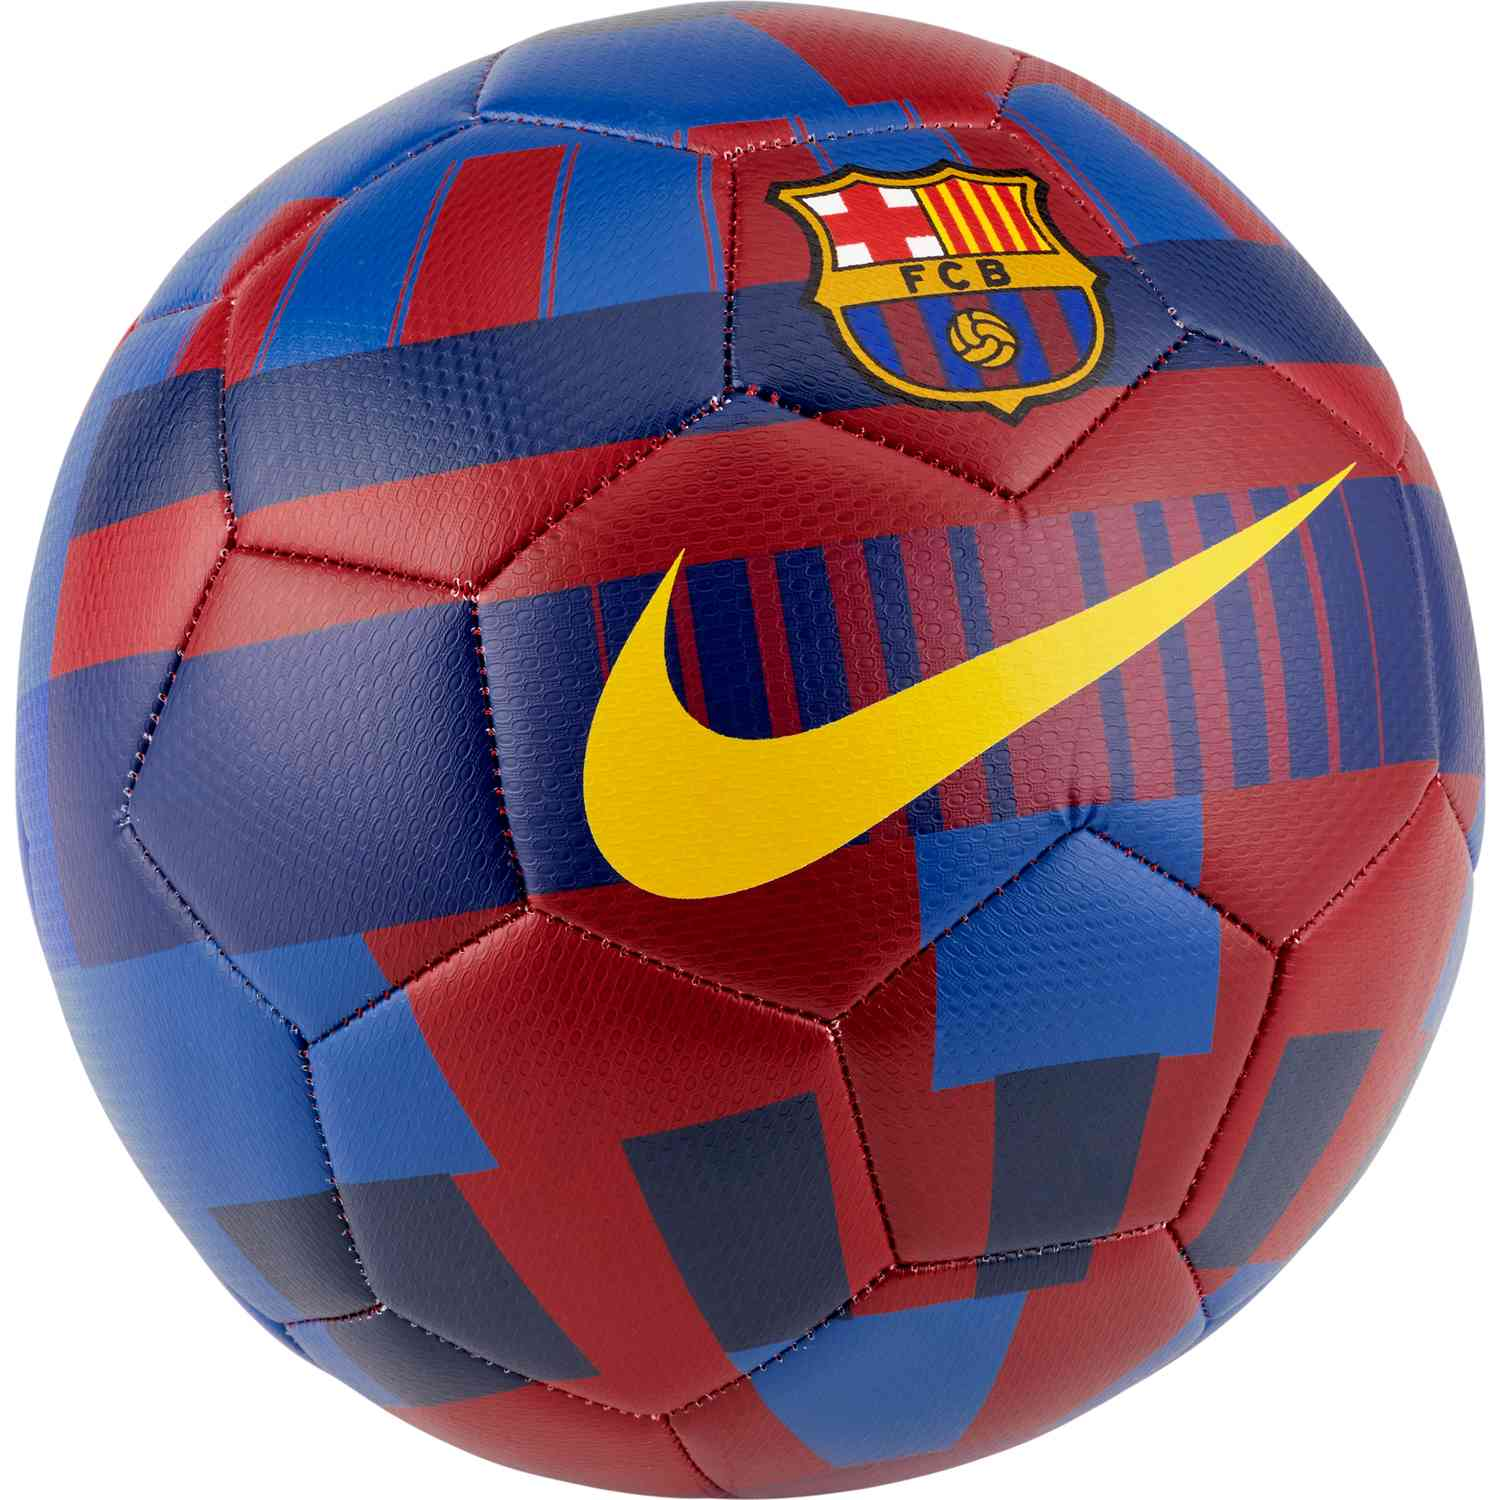 new style 2b18a 00cfb Nike Barcelona 20 Prestige Soccer Ball - Storm Red/Storm Blue